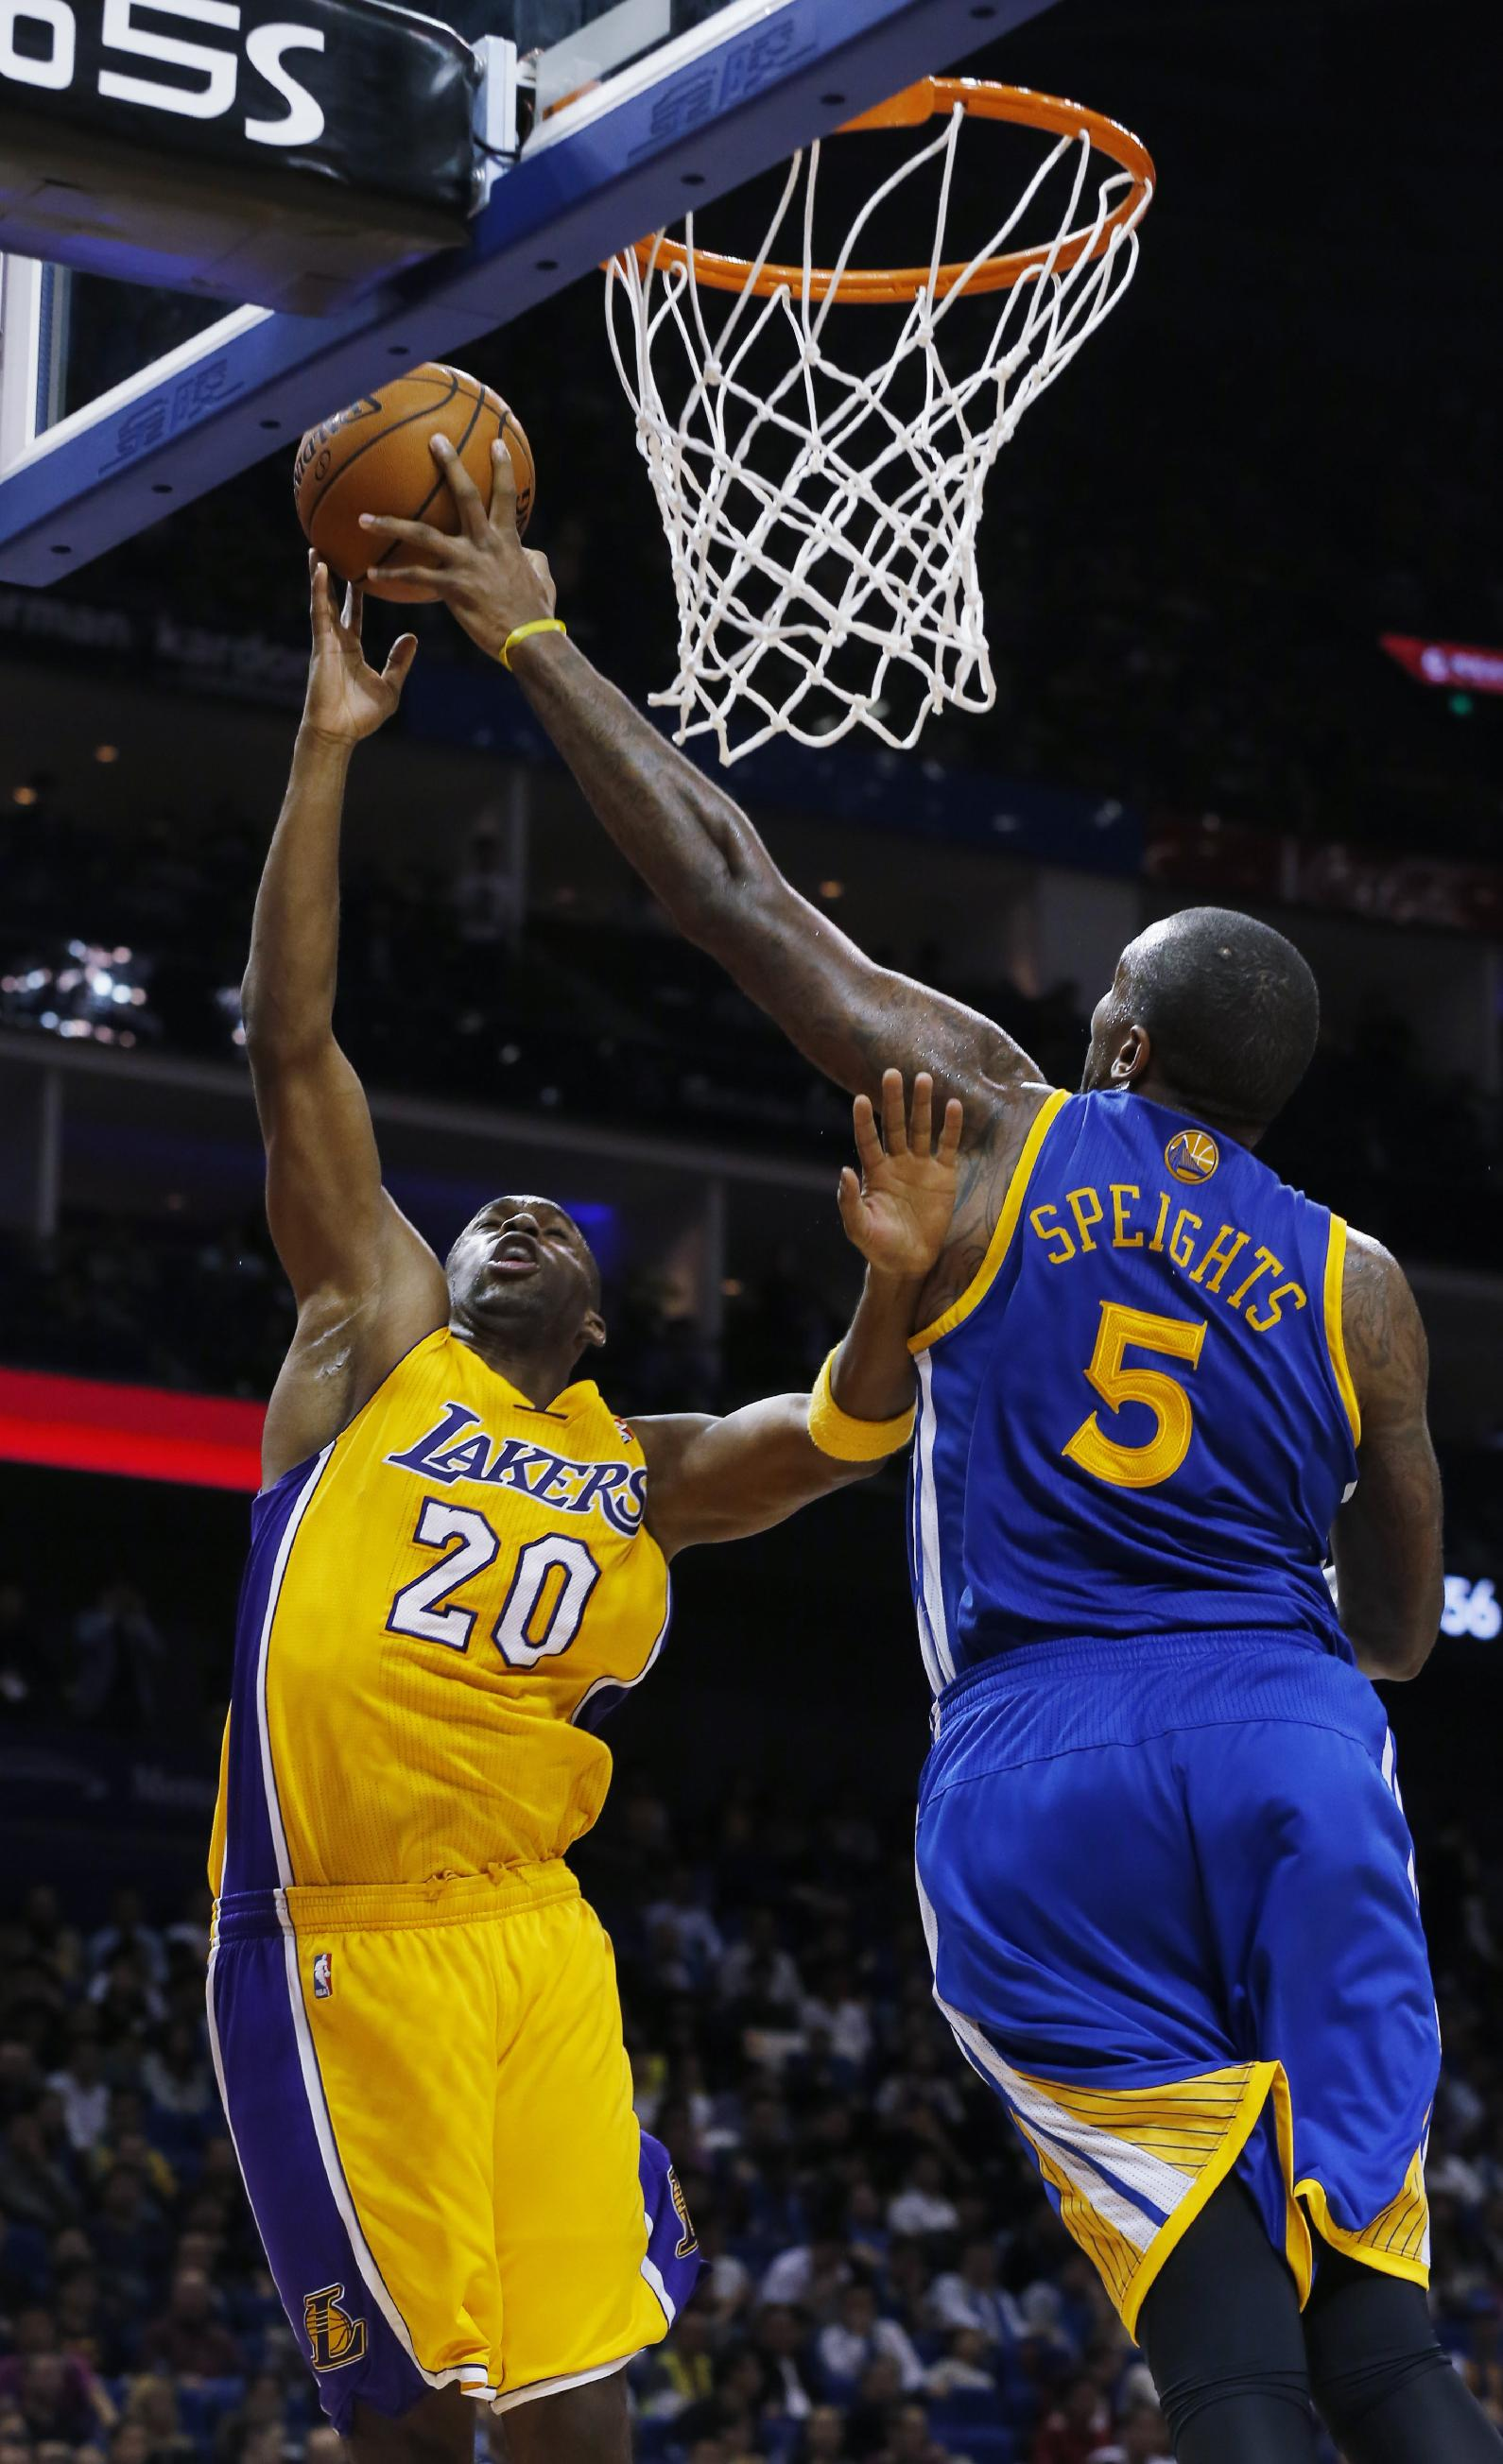 Jodie Meeks of Los Angeles Lakers, left, is blocked by Marreese Speights of Golden State Warriors during a 2013-2014 NBA preseason game between Lakers and Warriors at Mercedes-Benz Arena in Shanghai, China, Friday, Oct. 18, 2013